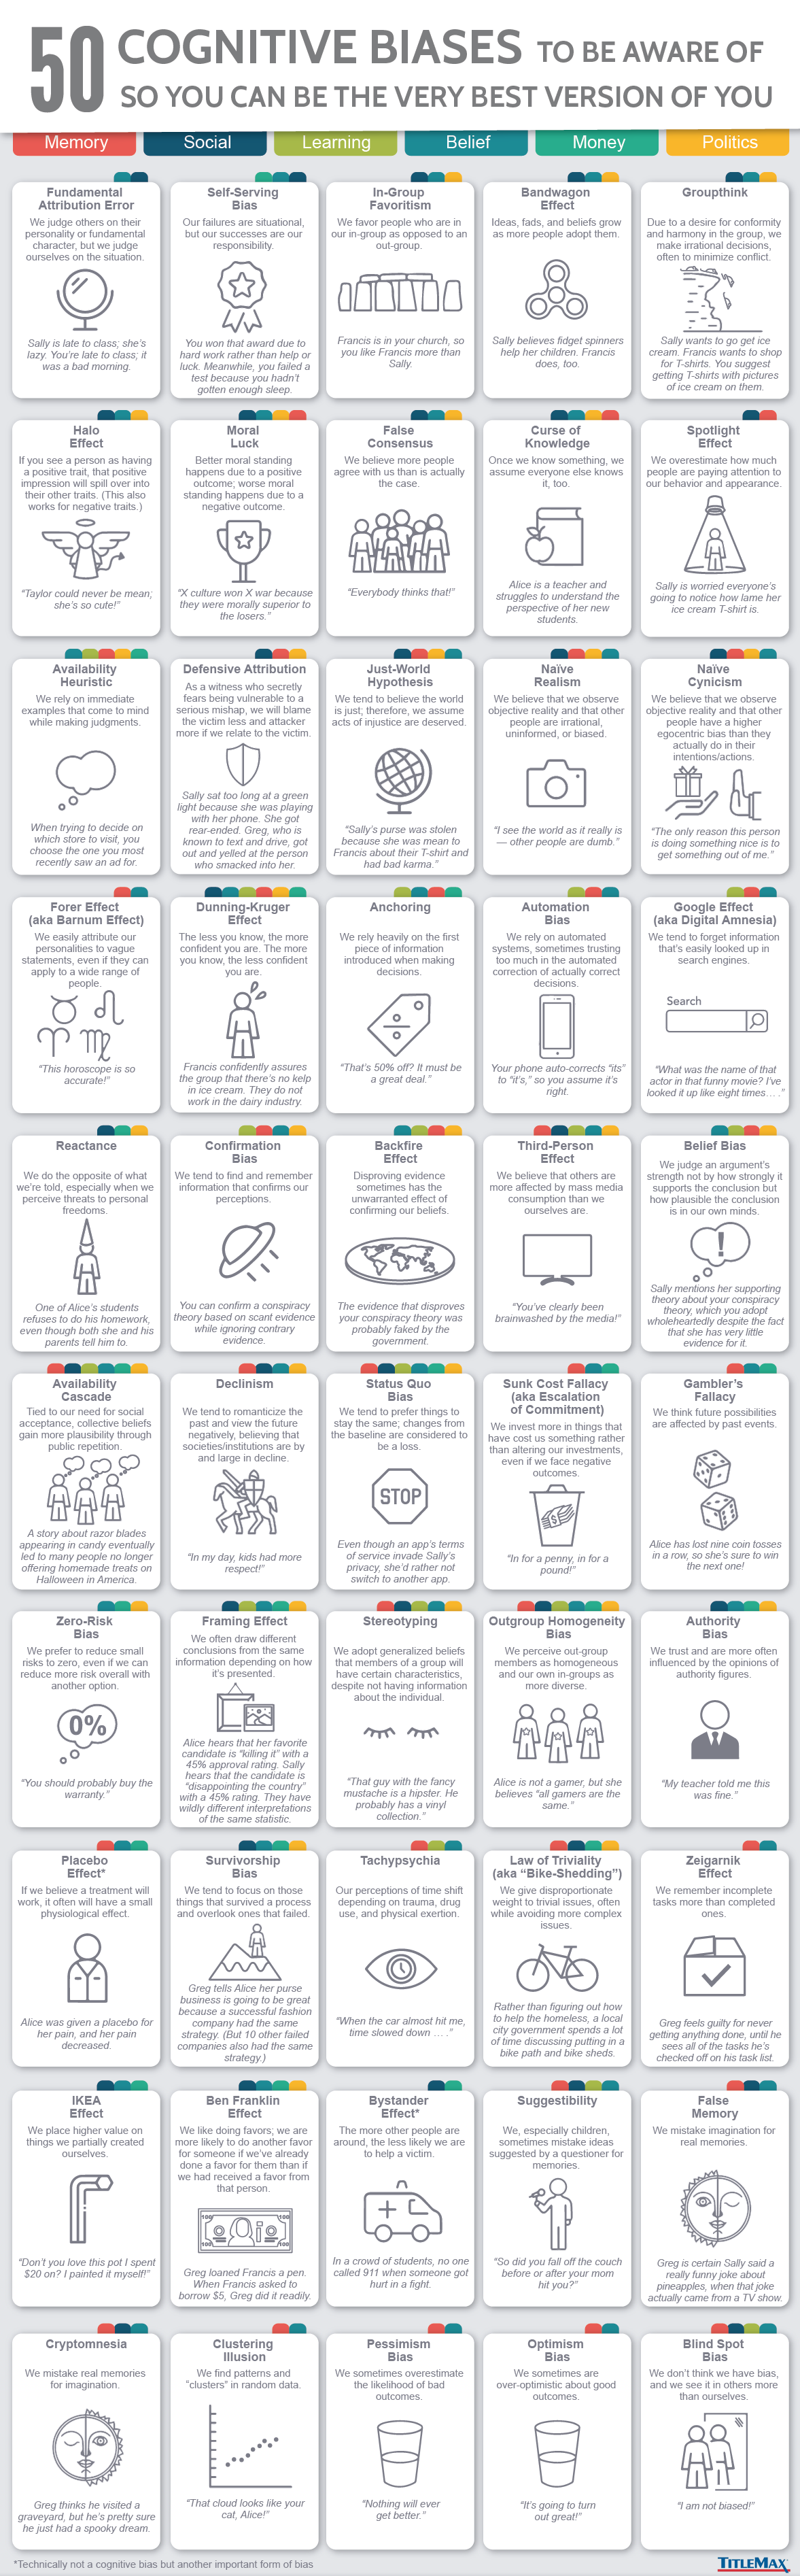 50 Cognitive Biases in the Modern World